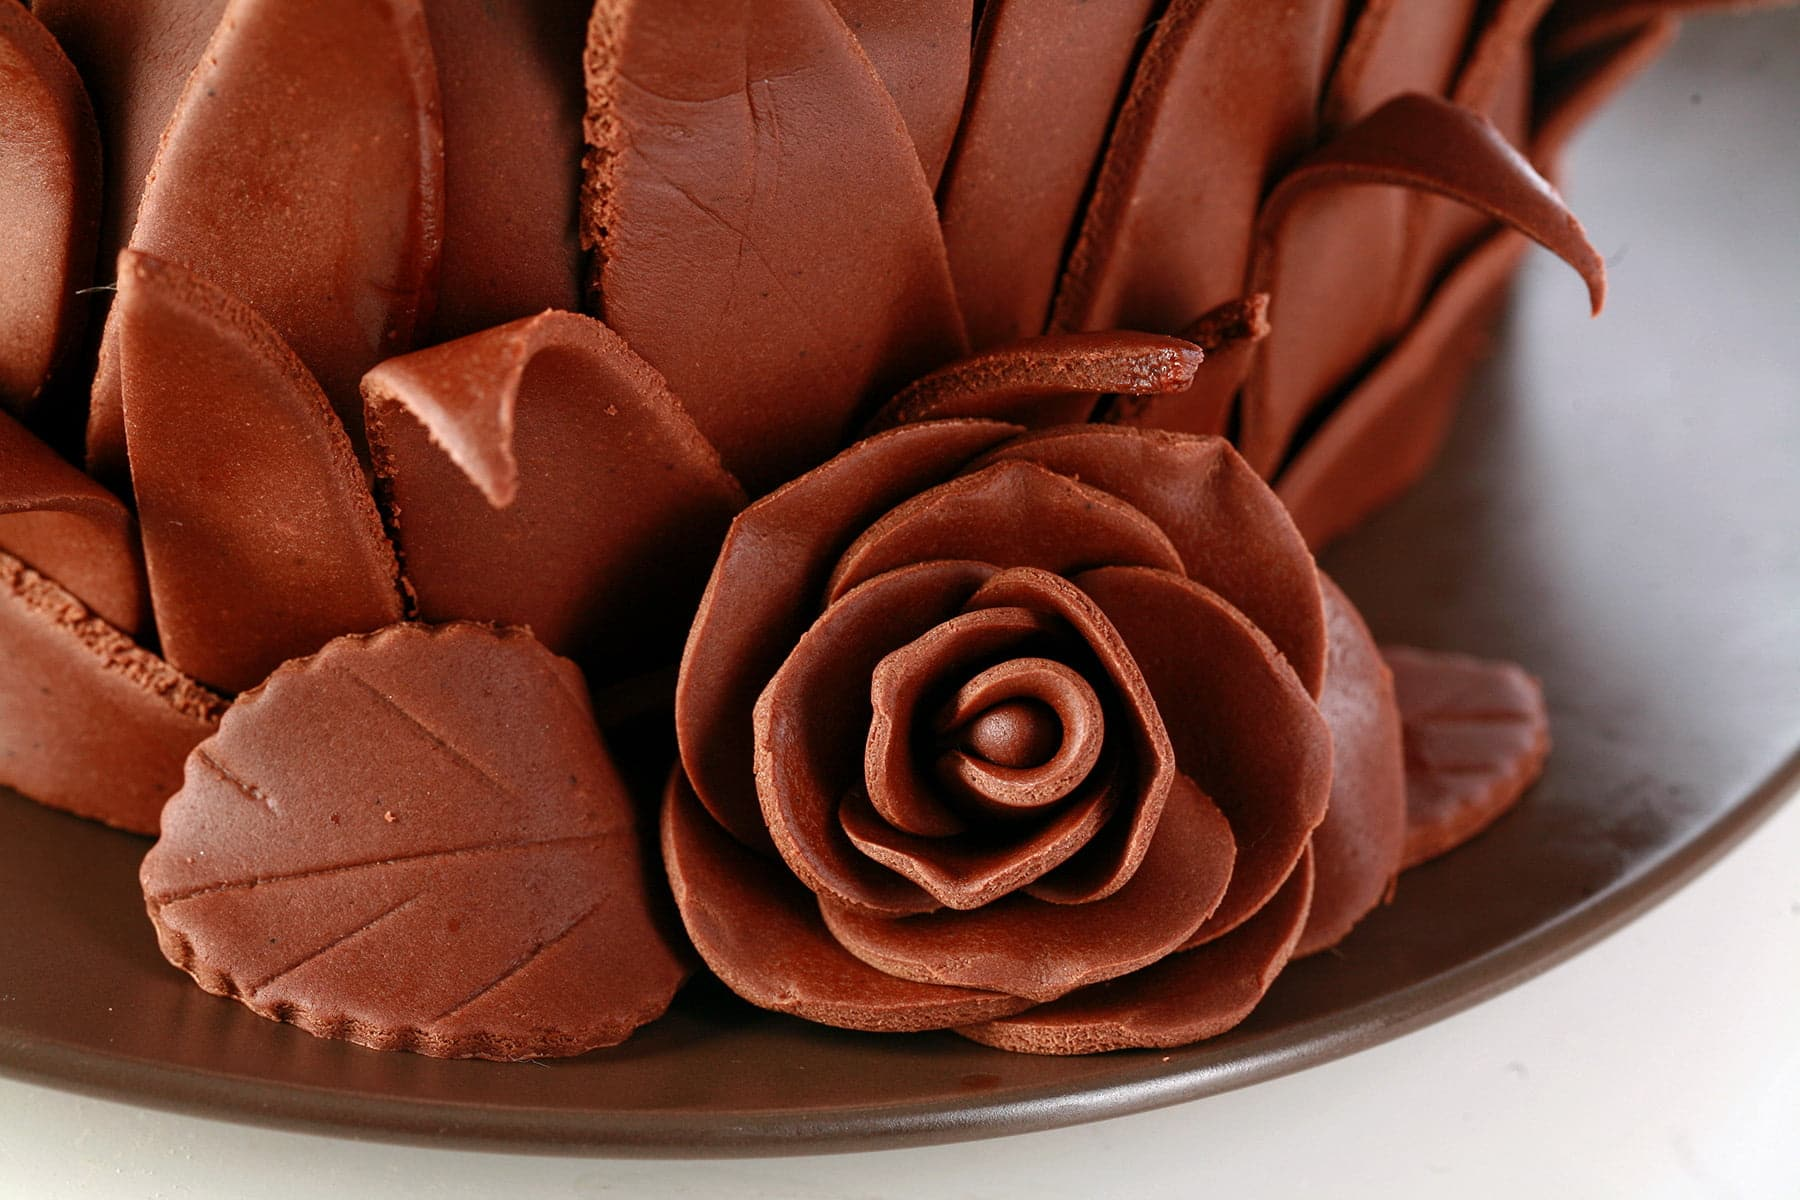 A close up view of a rose made from chocolate fondant.